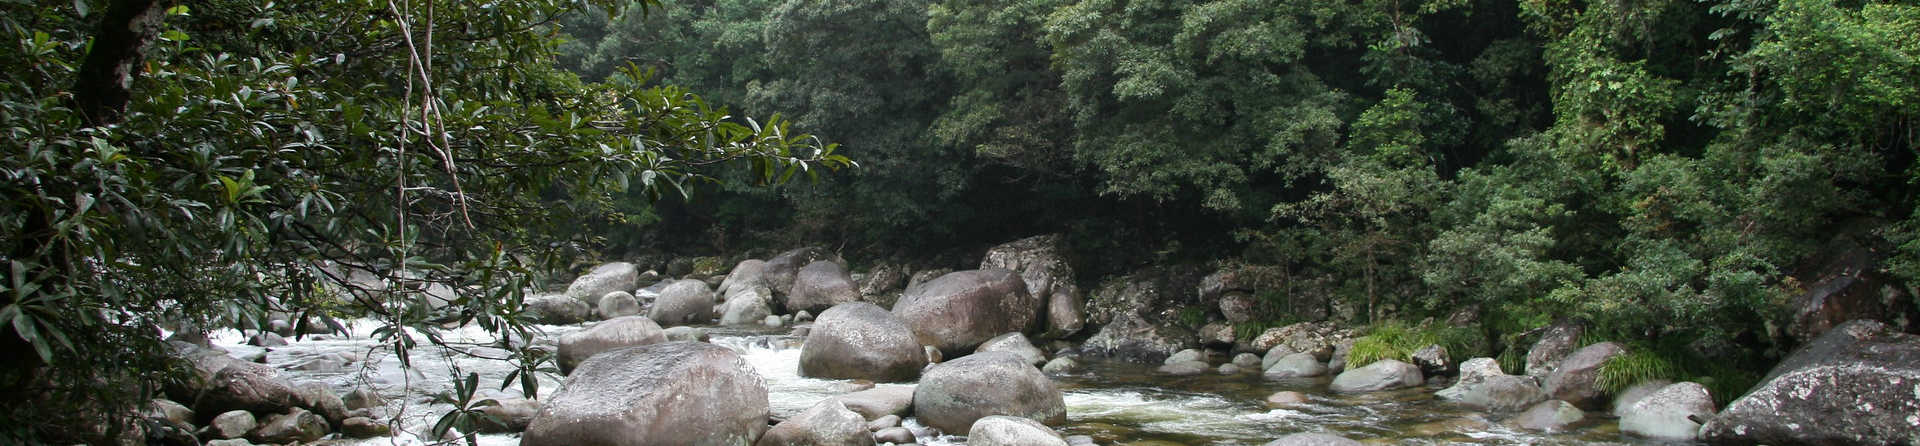 What is special about the Daintree Rainforest?